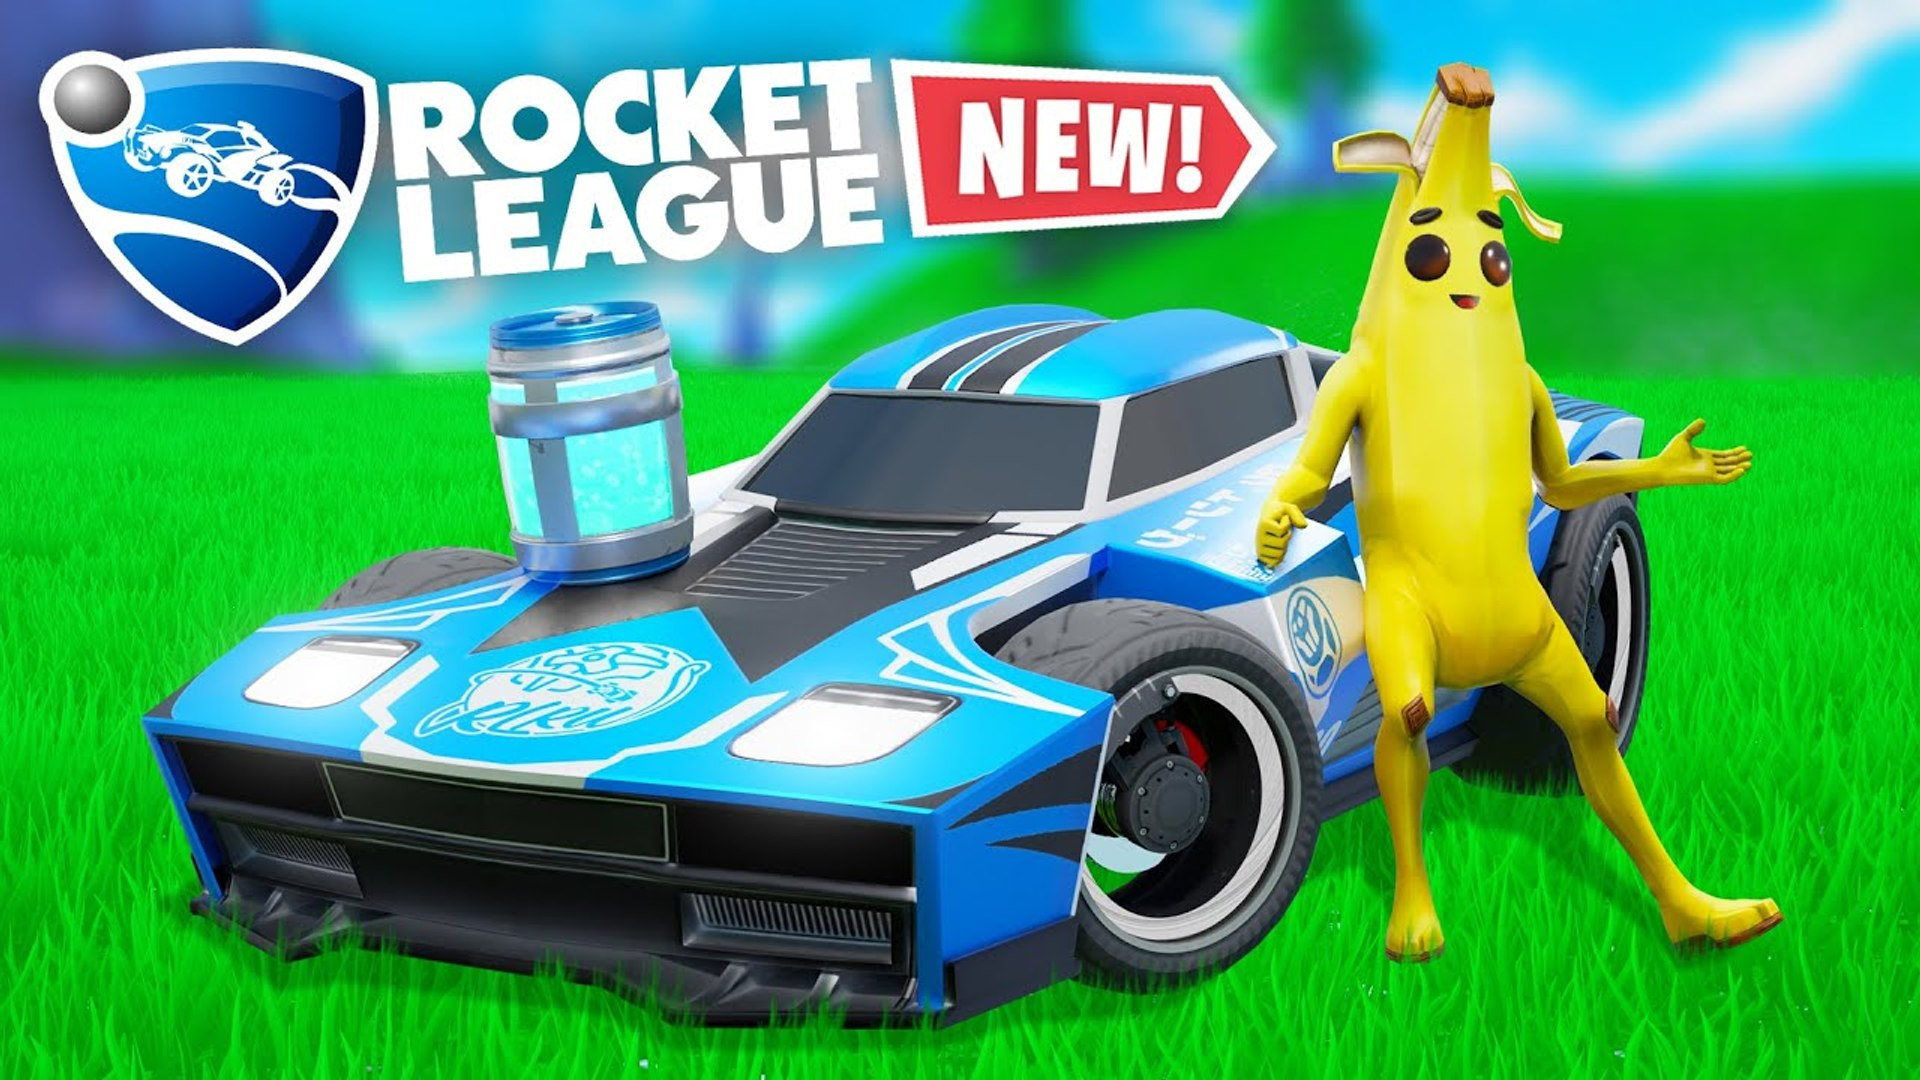 NEW PLAY ROCKET LEAGUE IN FORTNITE! - Fortnite Funny Fails and WTF Moments!